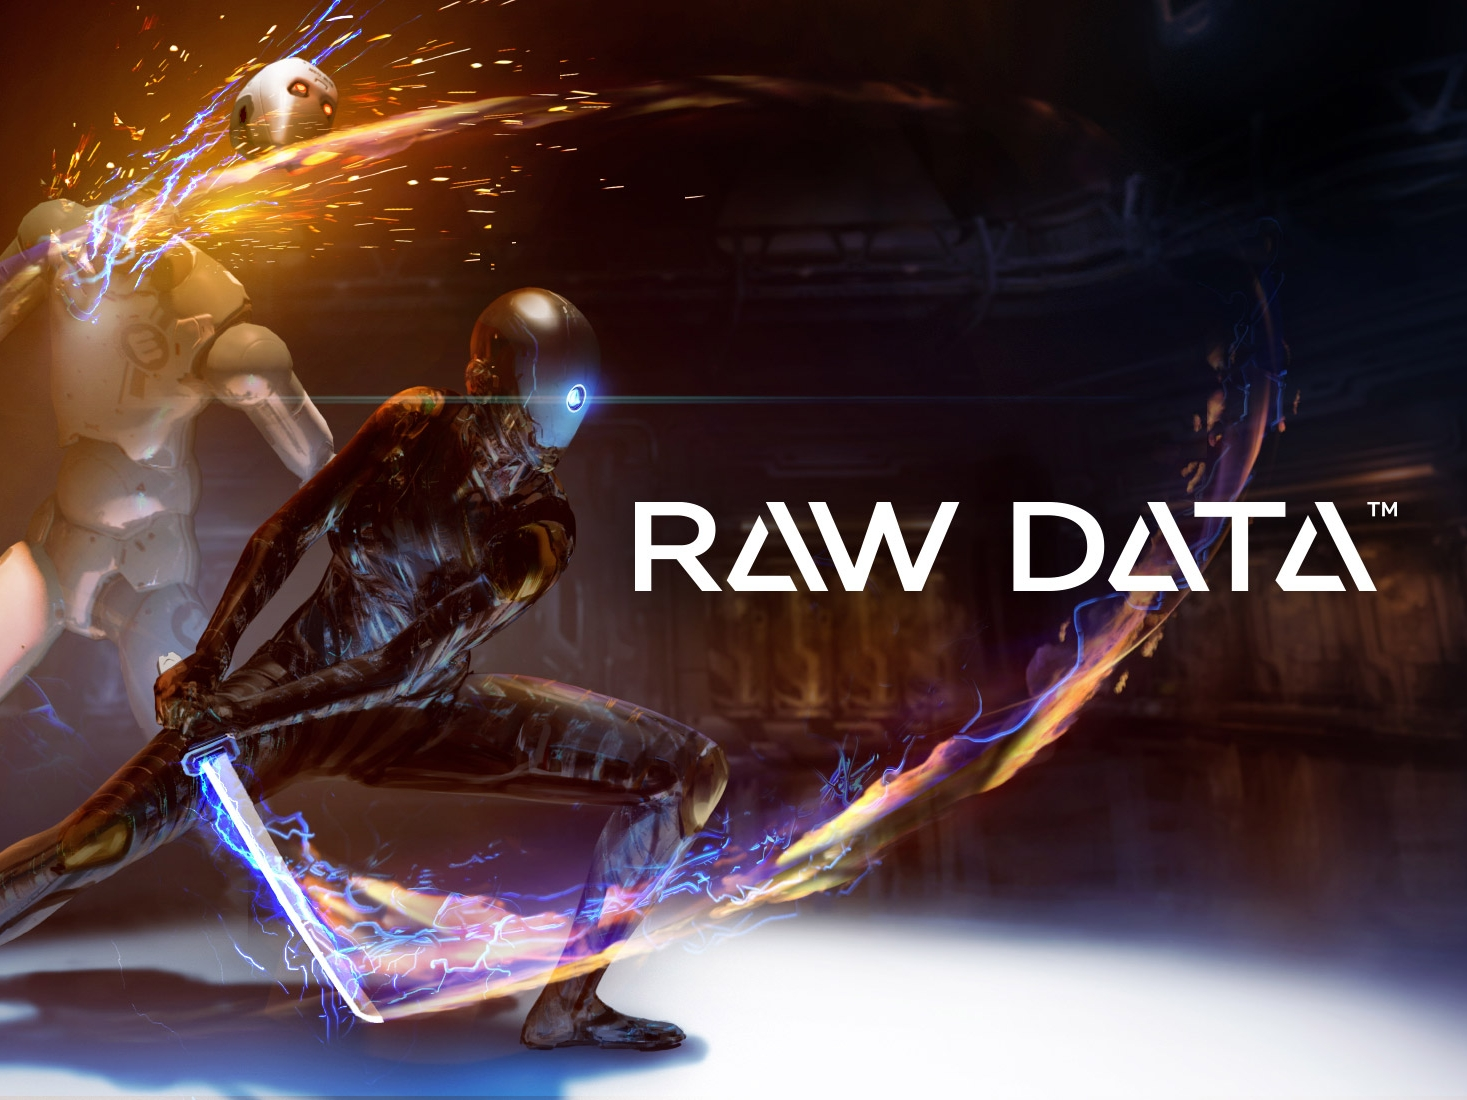 Built from the ground up for VR, Raw Data's action gameplay, intuitive controls, challenging enemies, and sci-fi atmosphere will completely immerse you within the surreal world of Eden Corp. Go solo or team up and become the adrenaline-charged heroes of your own futuristic technothriller.